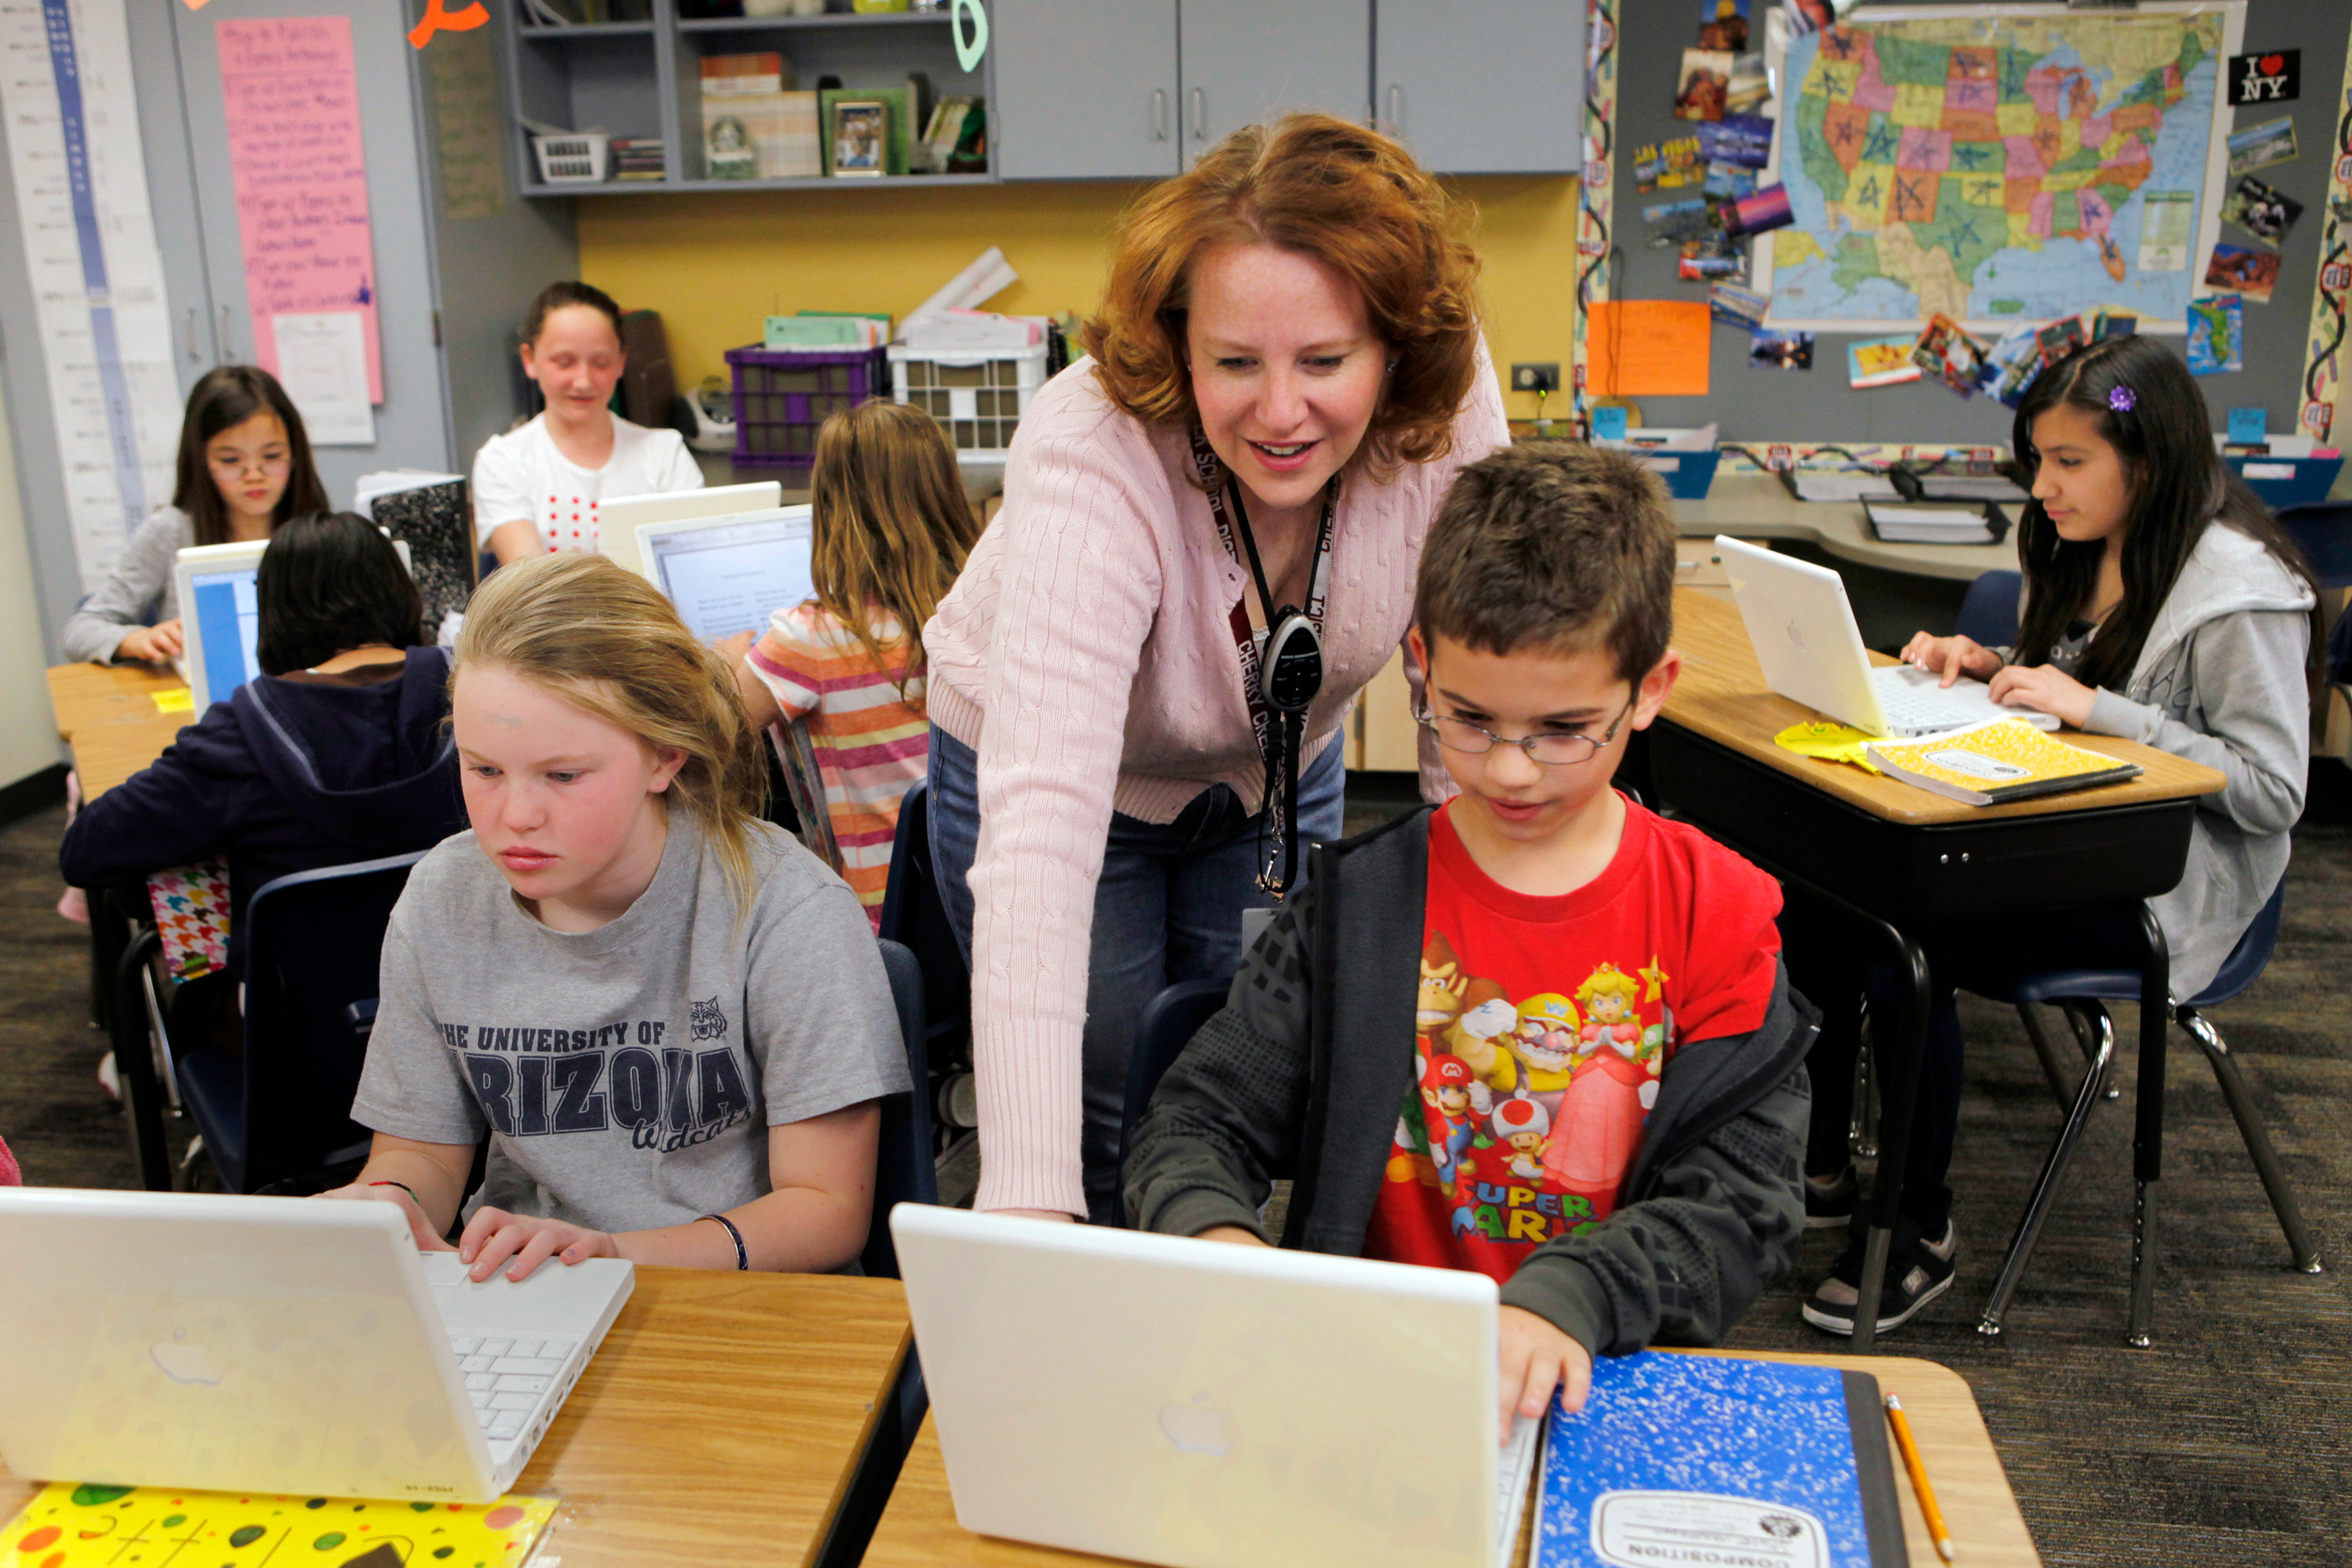 In this April 22, 2011 photo, High Plains Elementary School teacher Jennifer Williford, center, works with Colette Jackson, 11, and Skyler Matteson, 10, right, on a computer project in her fifth grade class at the school in Englewood, Colo.